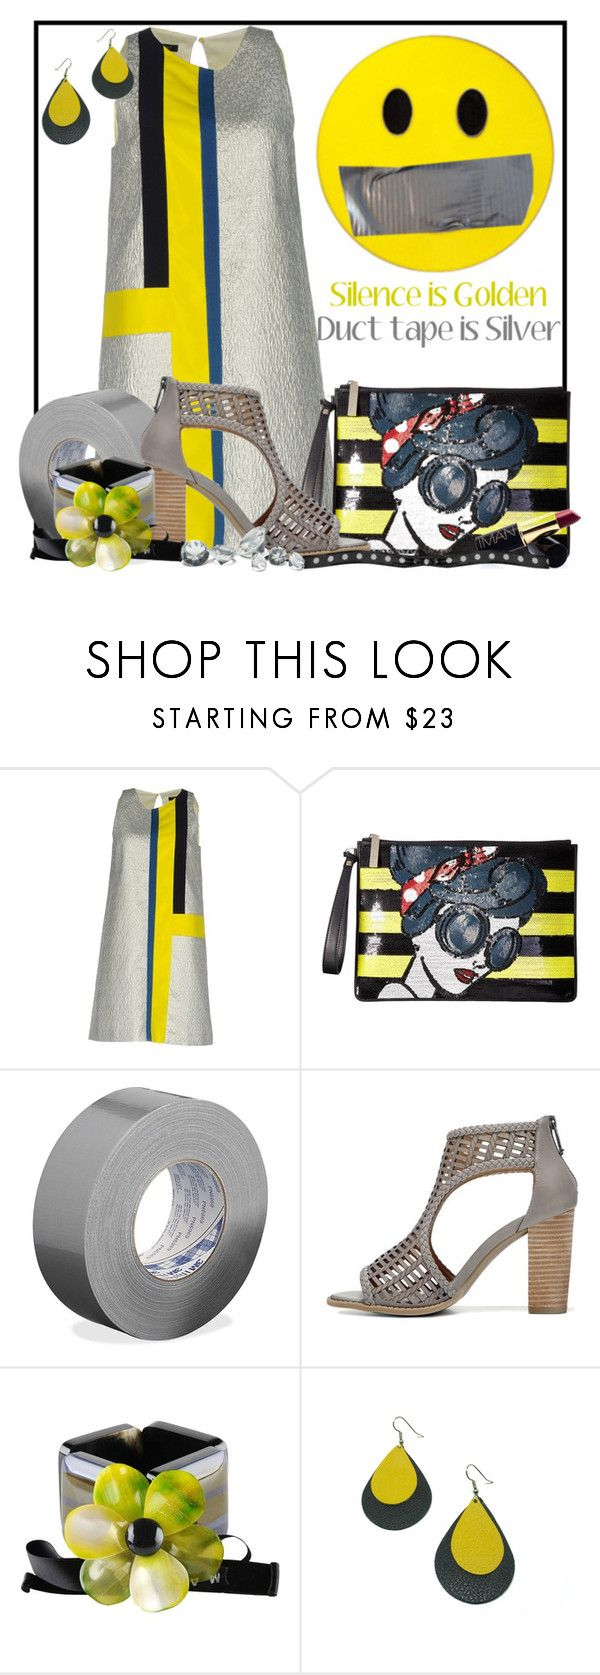 """Just sayin' . . ."" by doozer ❤ liked on Polyvore featuring Tara Jarmon, Alice + Olivia, 3M, Marni and Guide London"